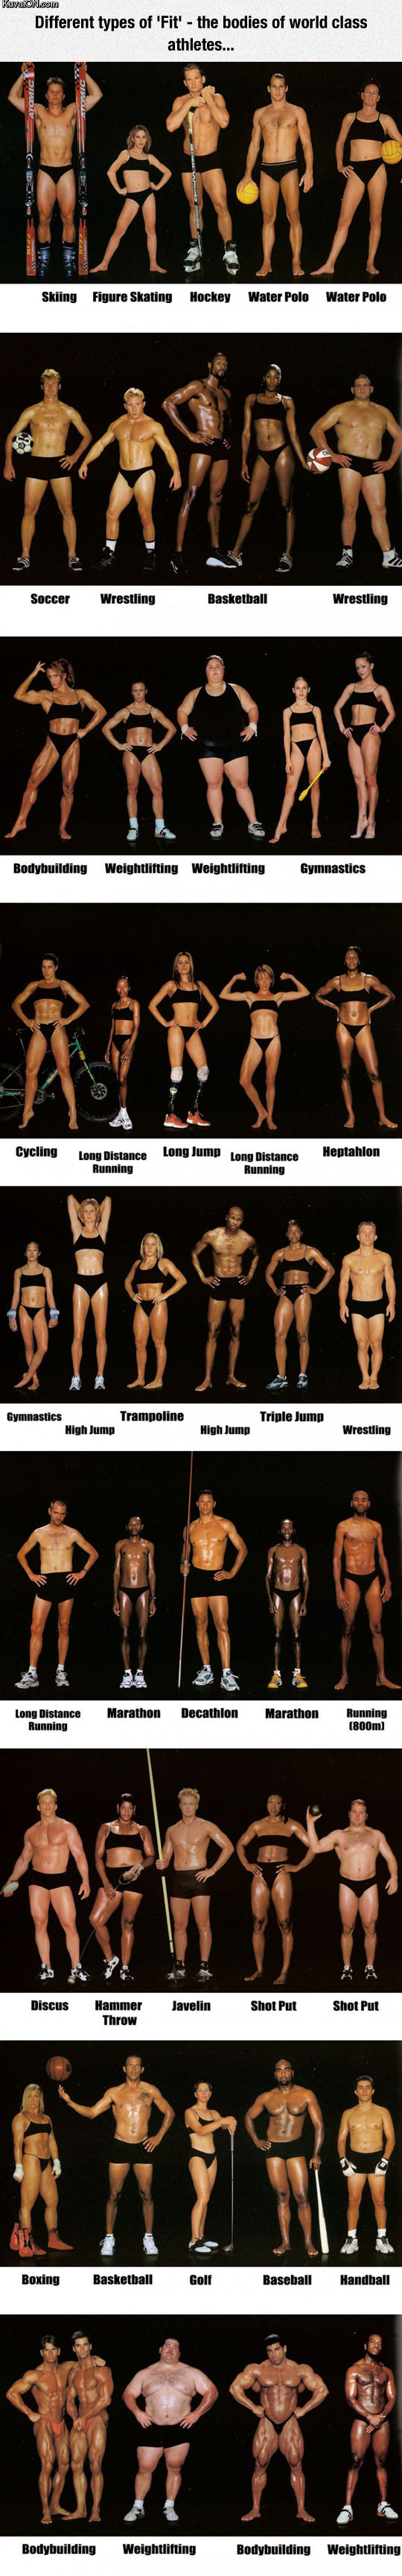 the_shape_of_your_body_depends_on_the_sport_you_do.jpg